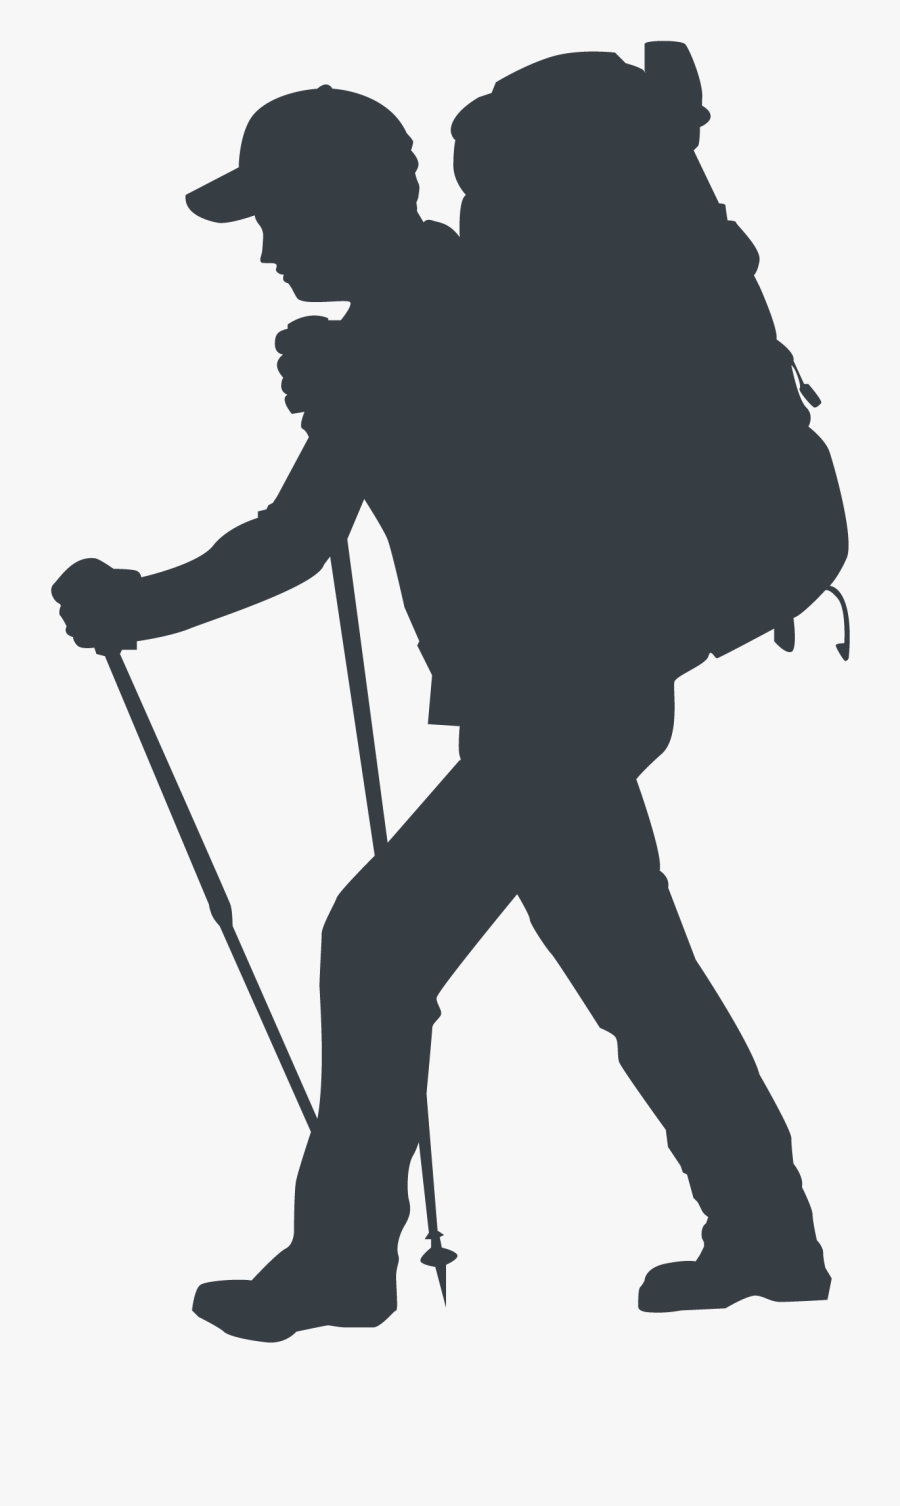 And - Silhouette Hiking, Transparent Clipart